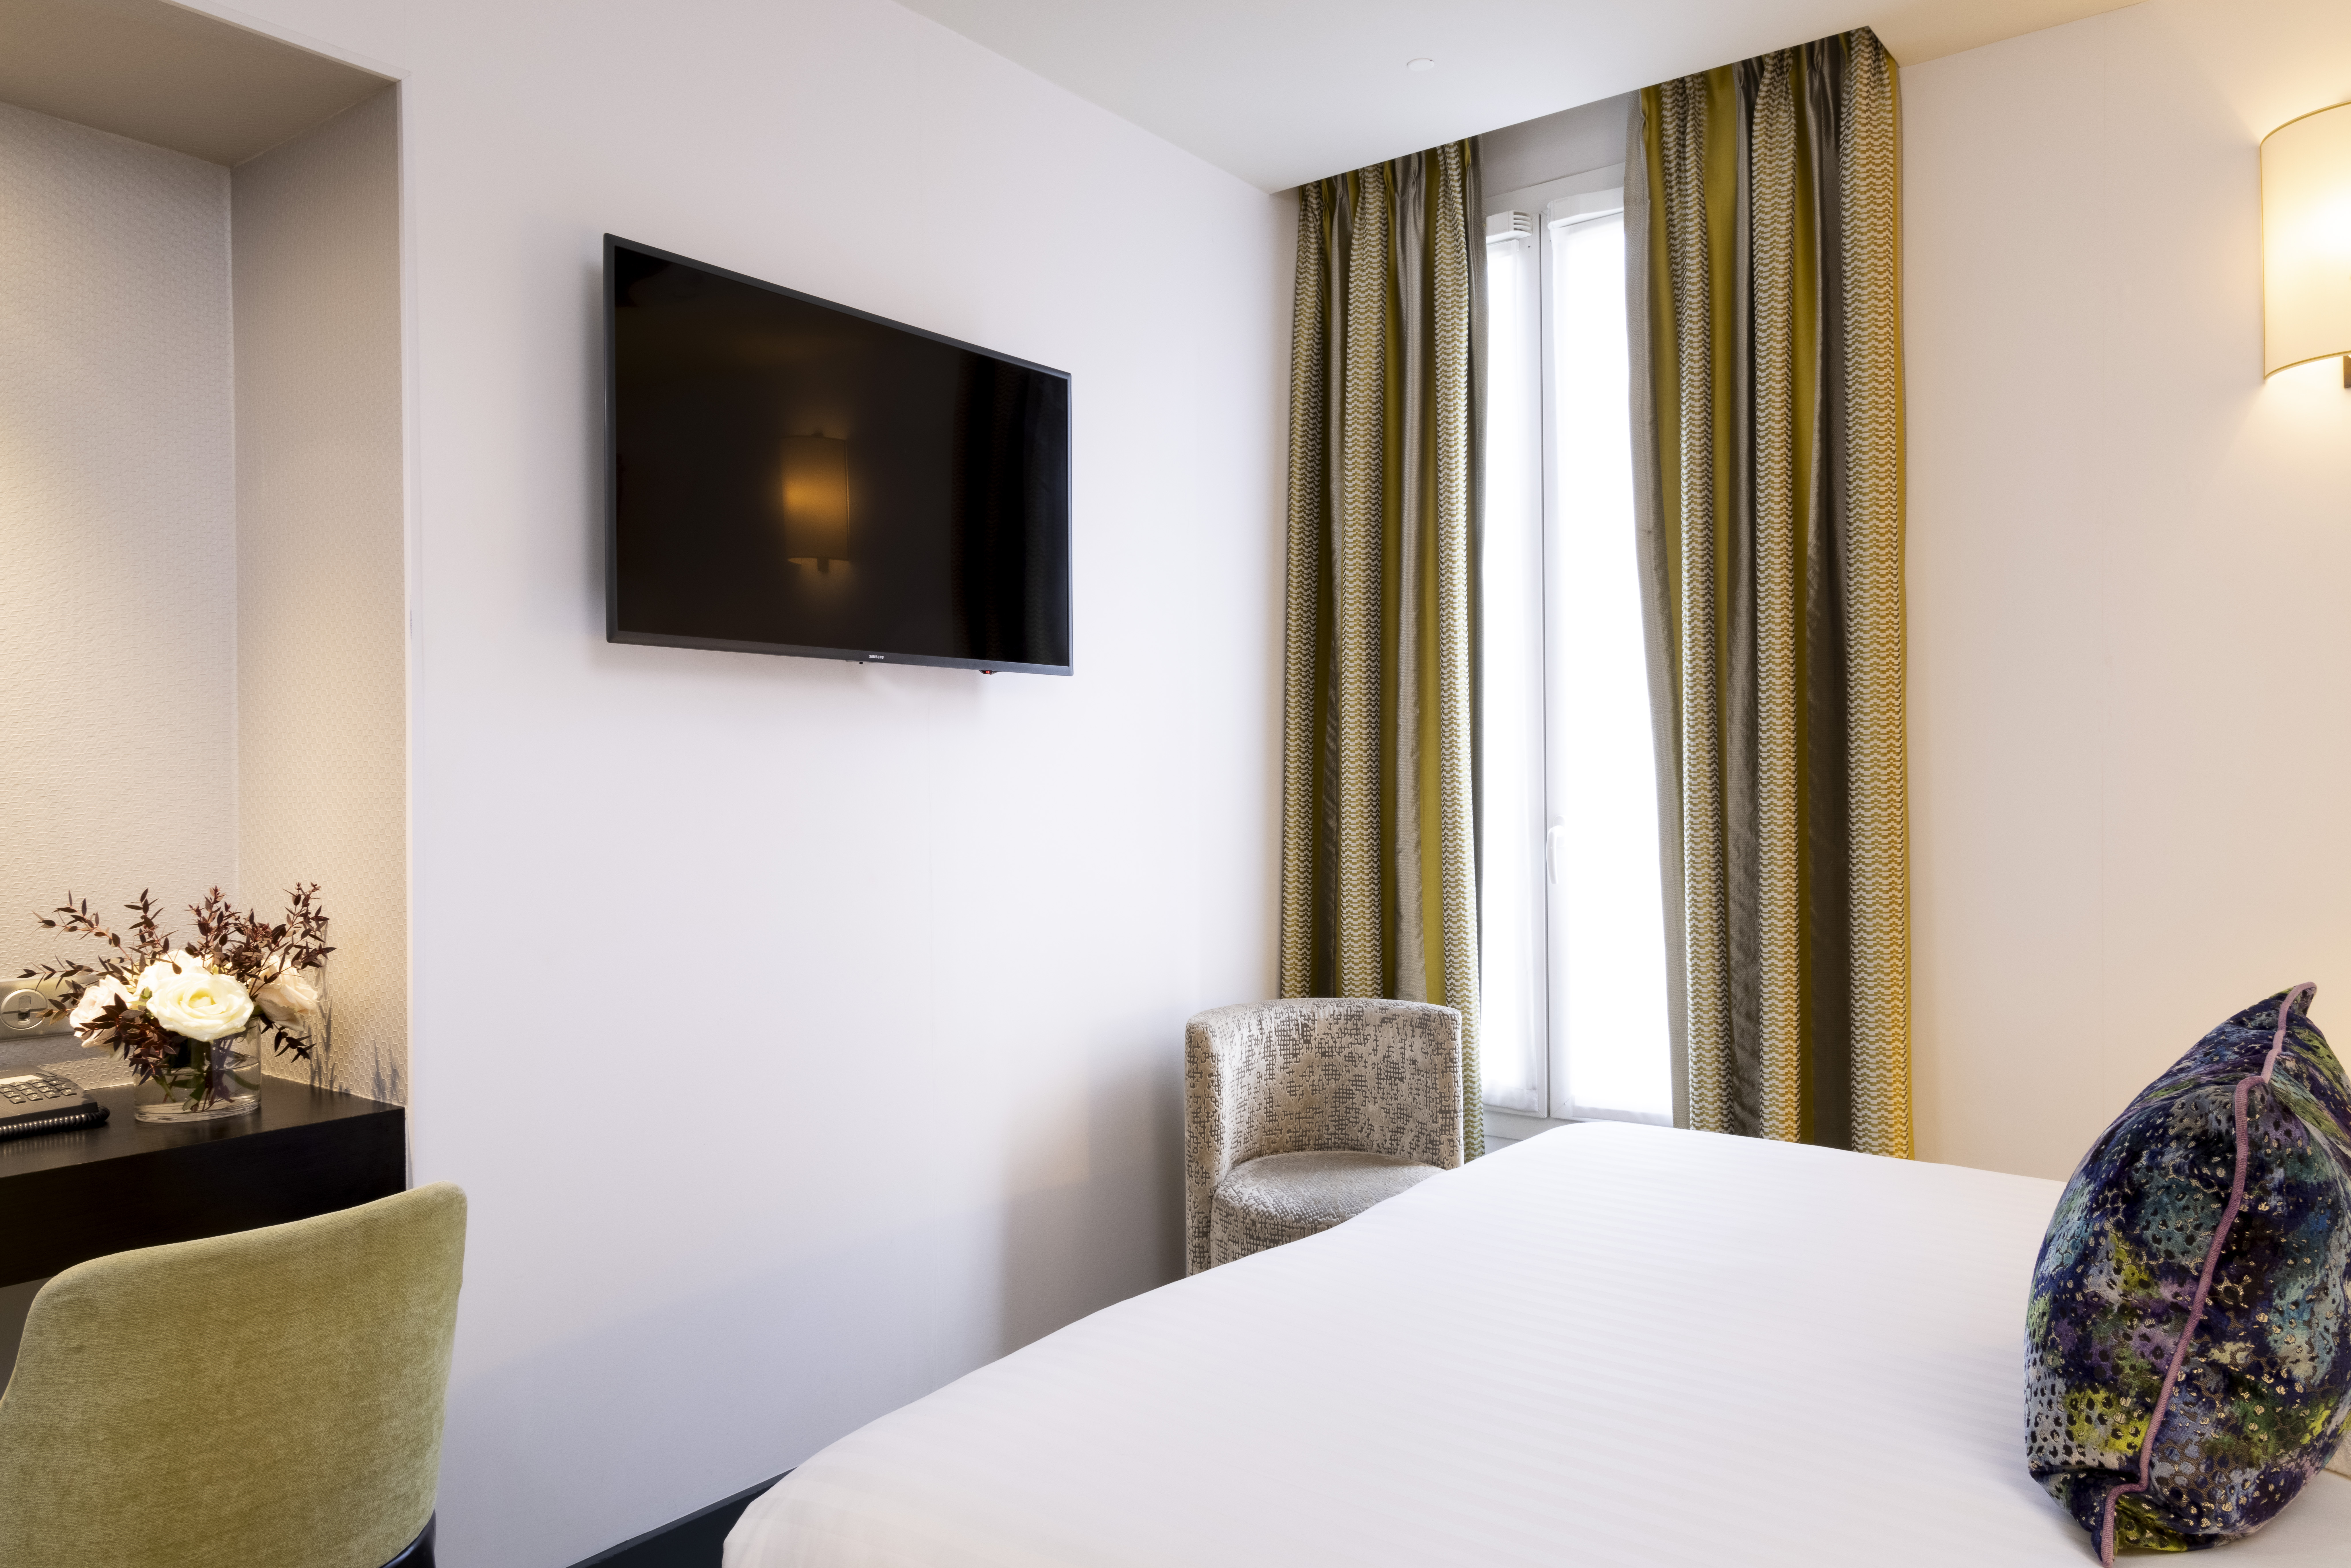 723/Gustave/chambre_/Trd/_16A6271_hotel_gustave_md.jpg